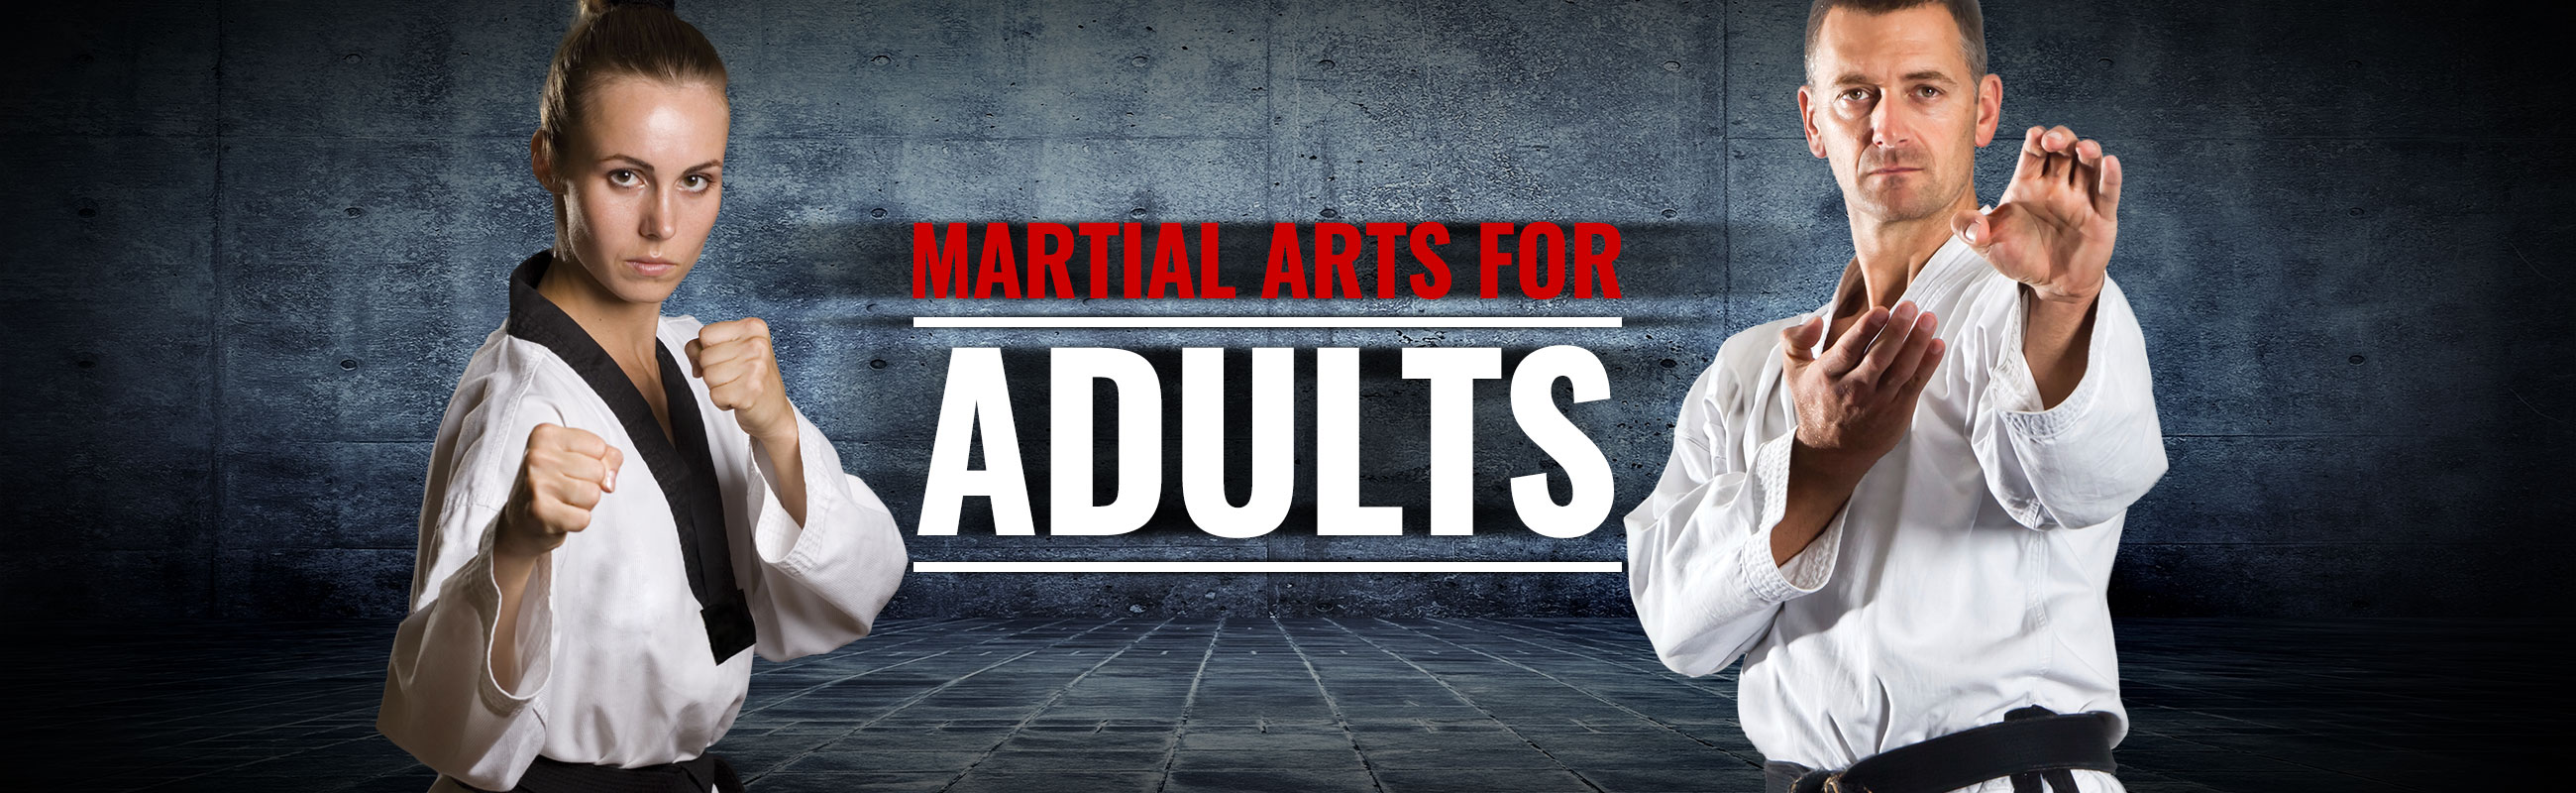 sider-martial-arts-for-adults